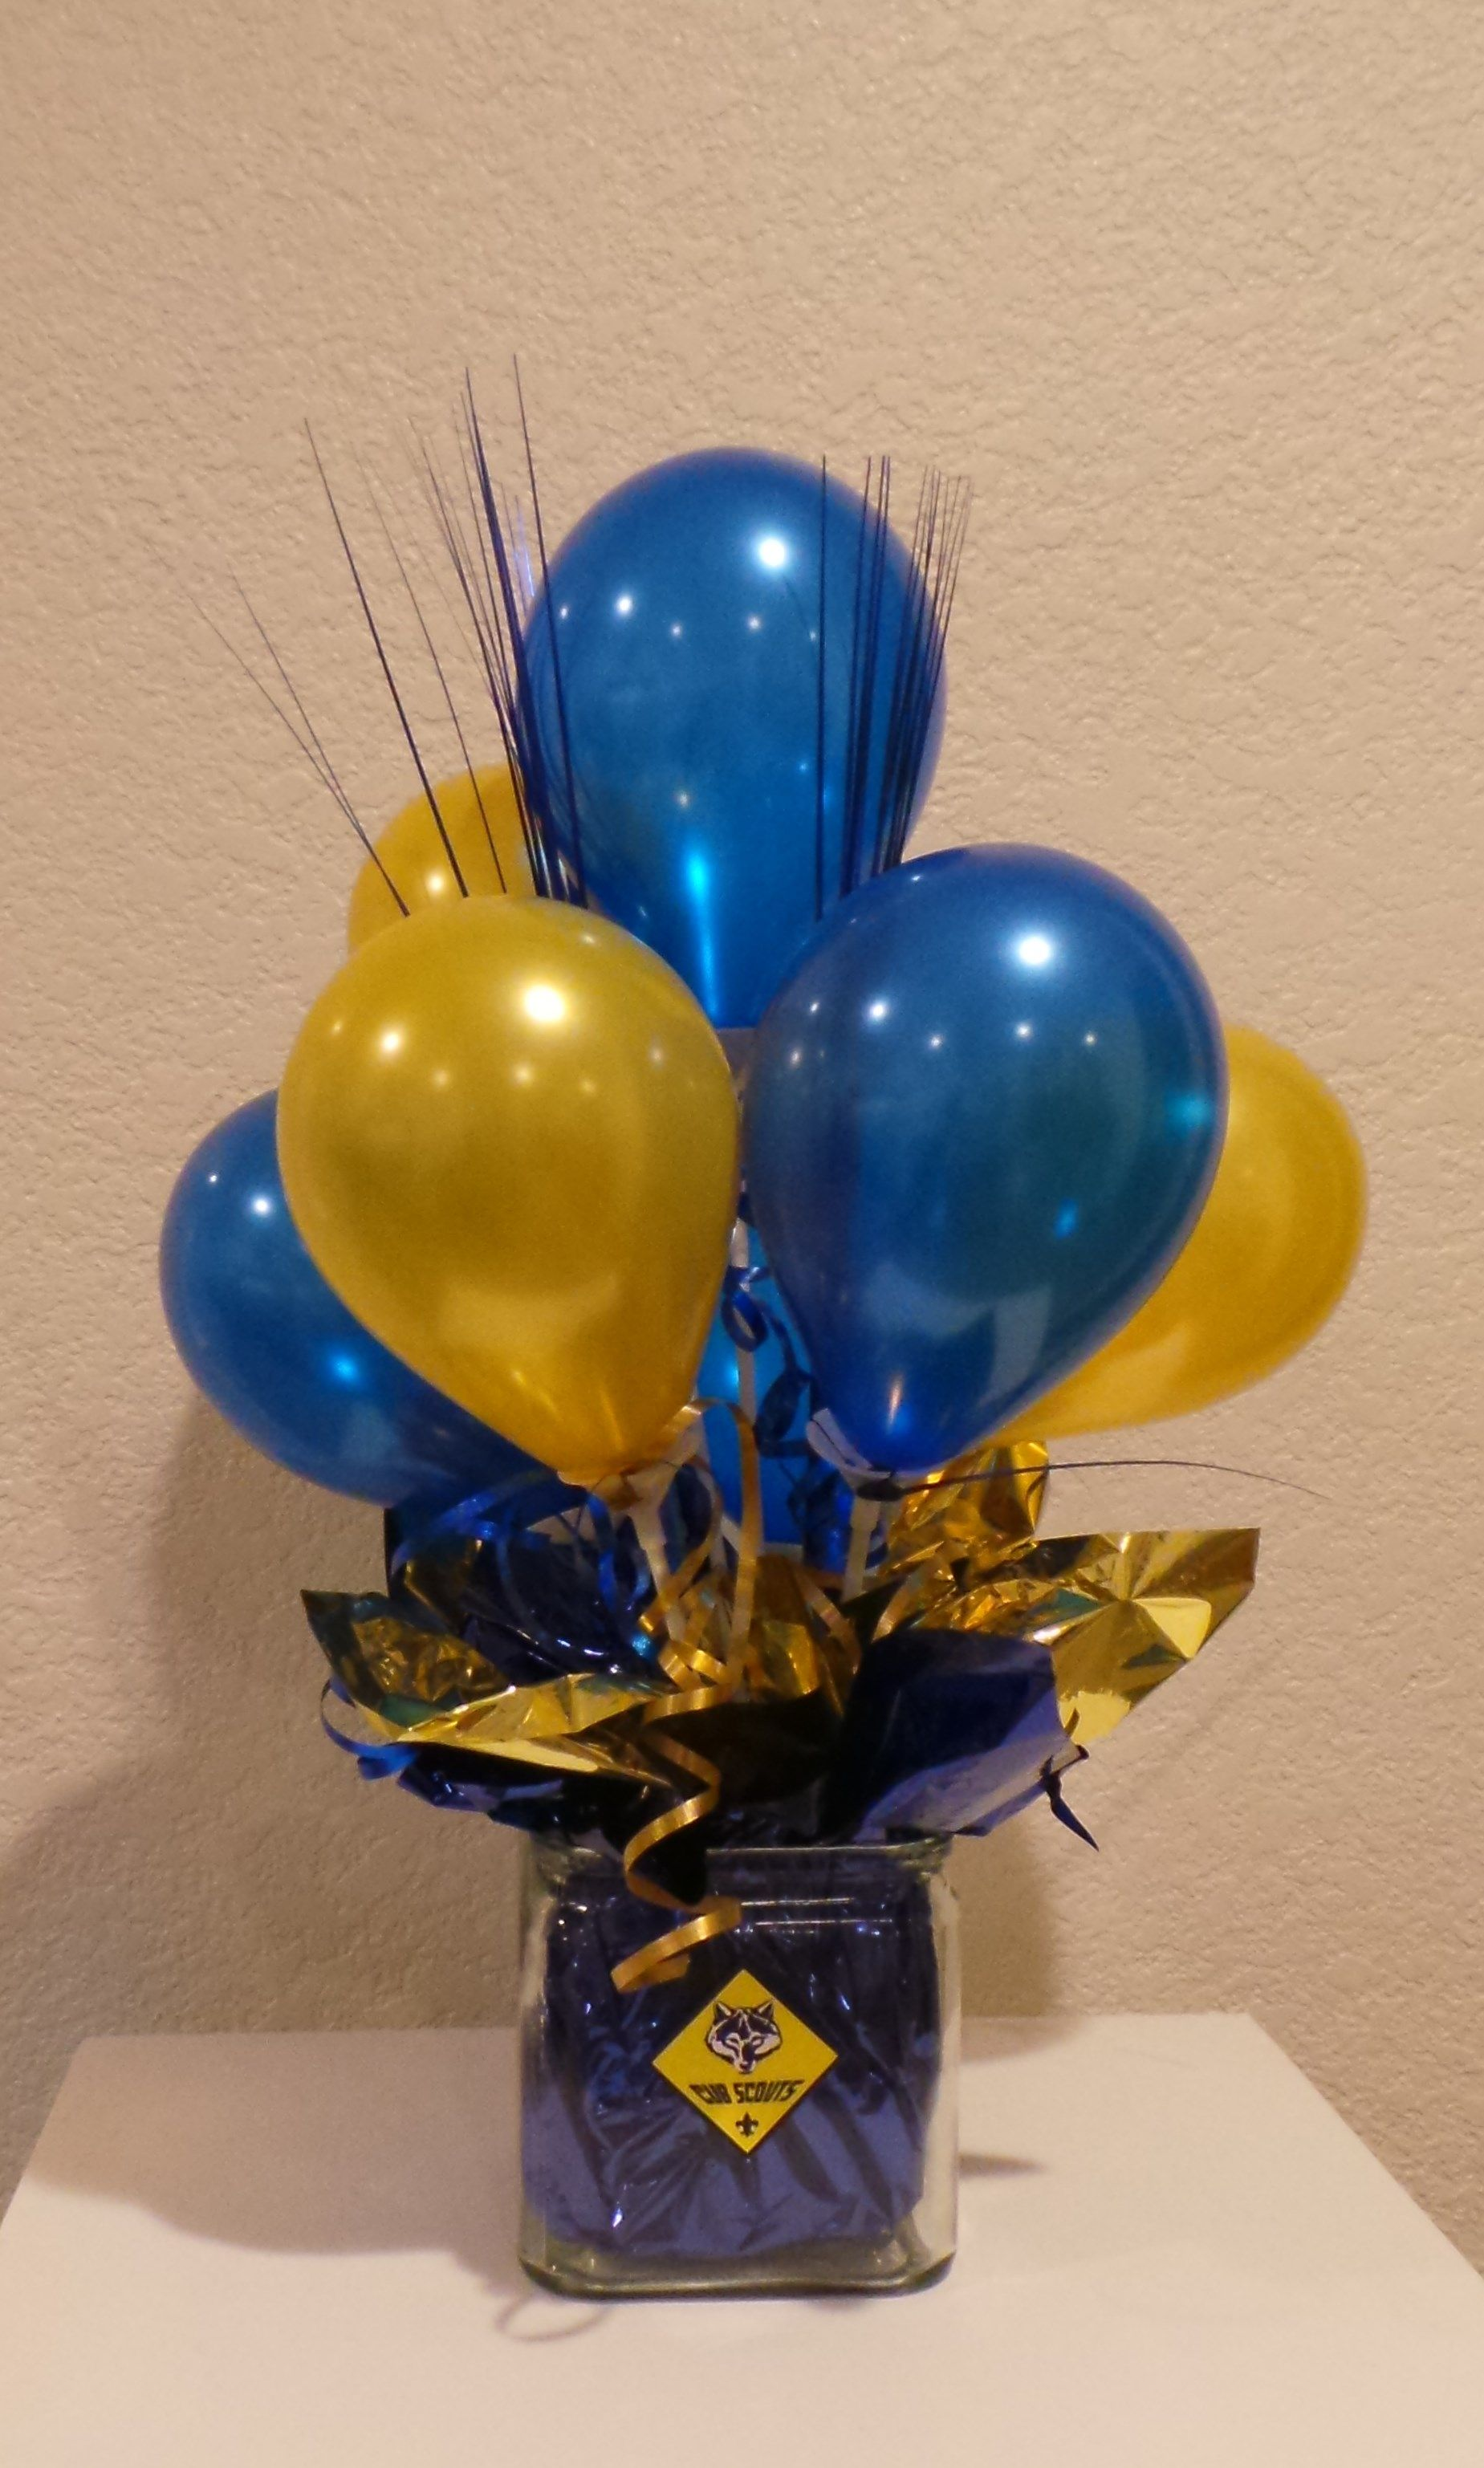 Awe Inspiring Blue And Gold Balloon Centerpiece Using 5 Balloons Cub Download Free Architecture Designs Embacsunscenecom